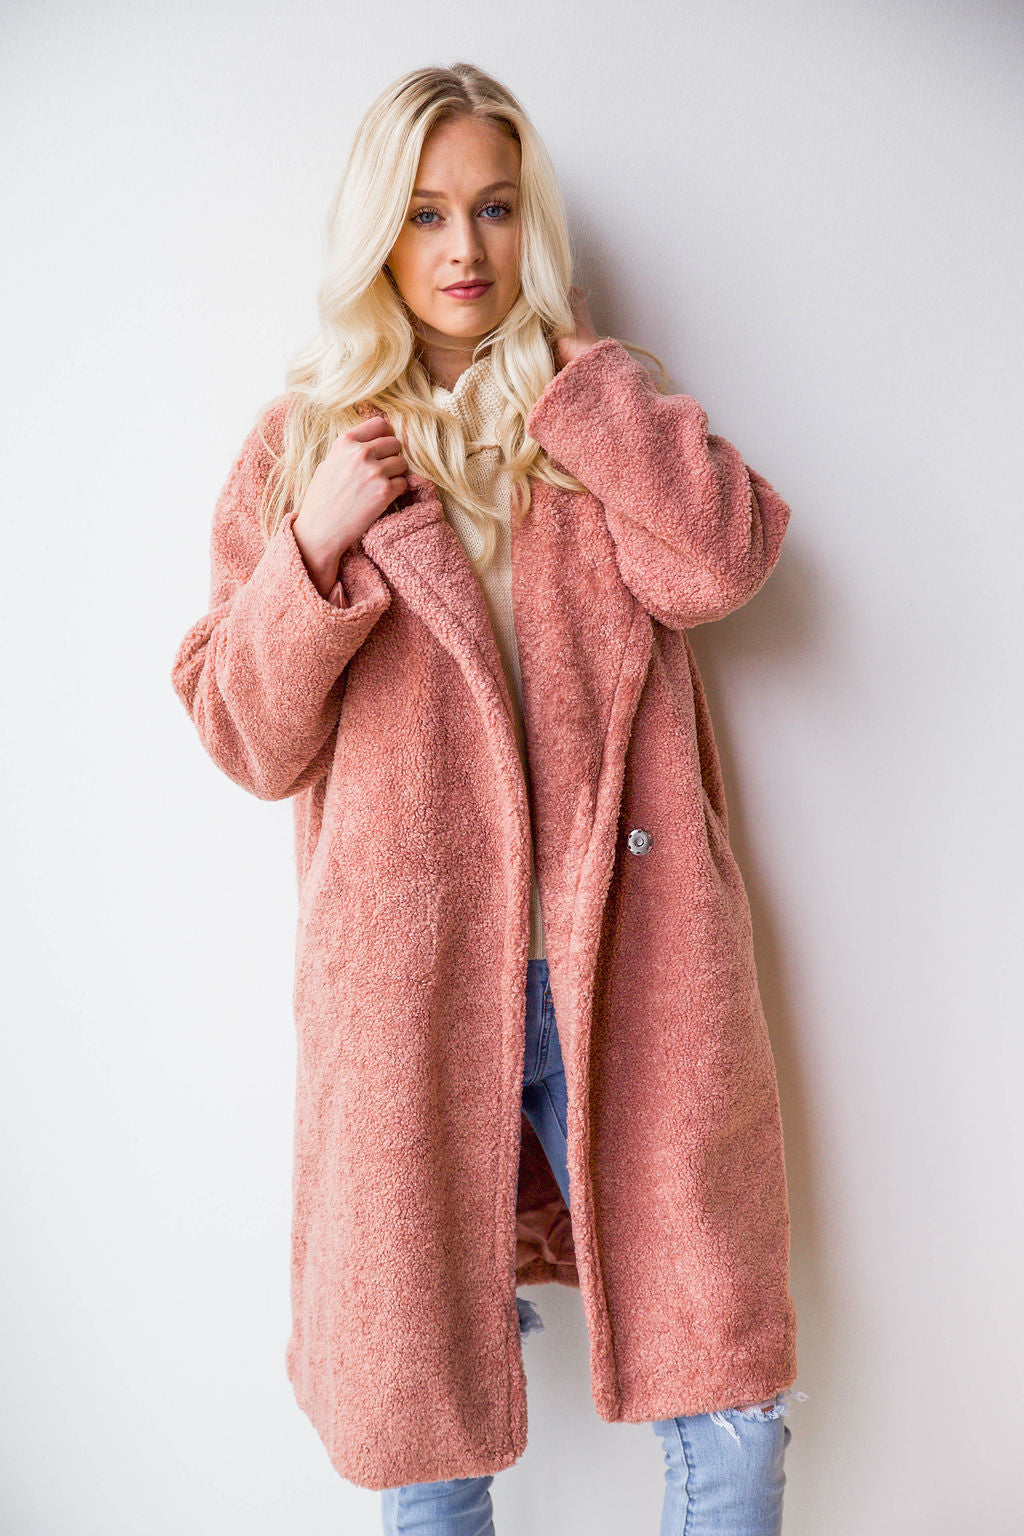 mode, teddy bear coat